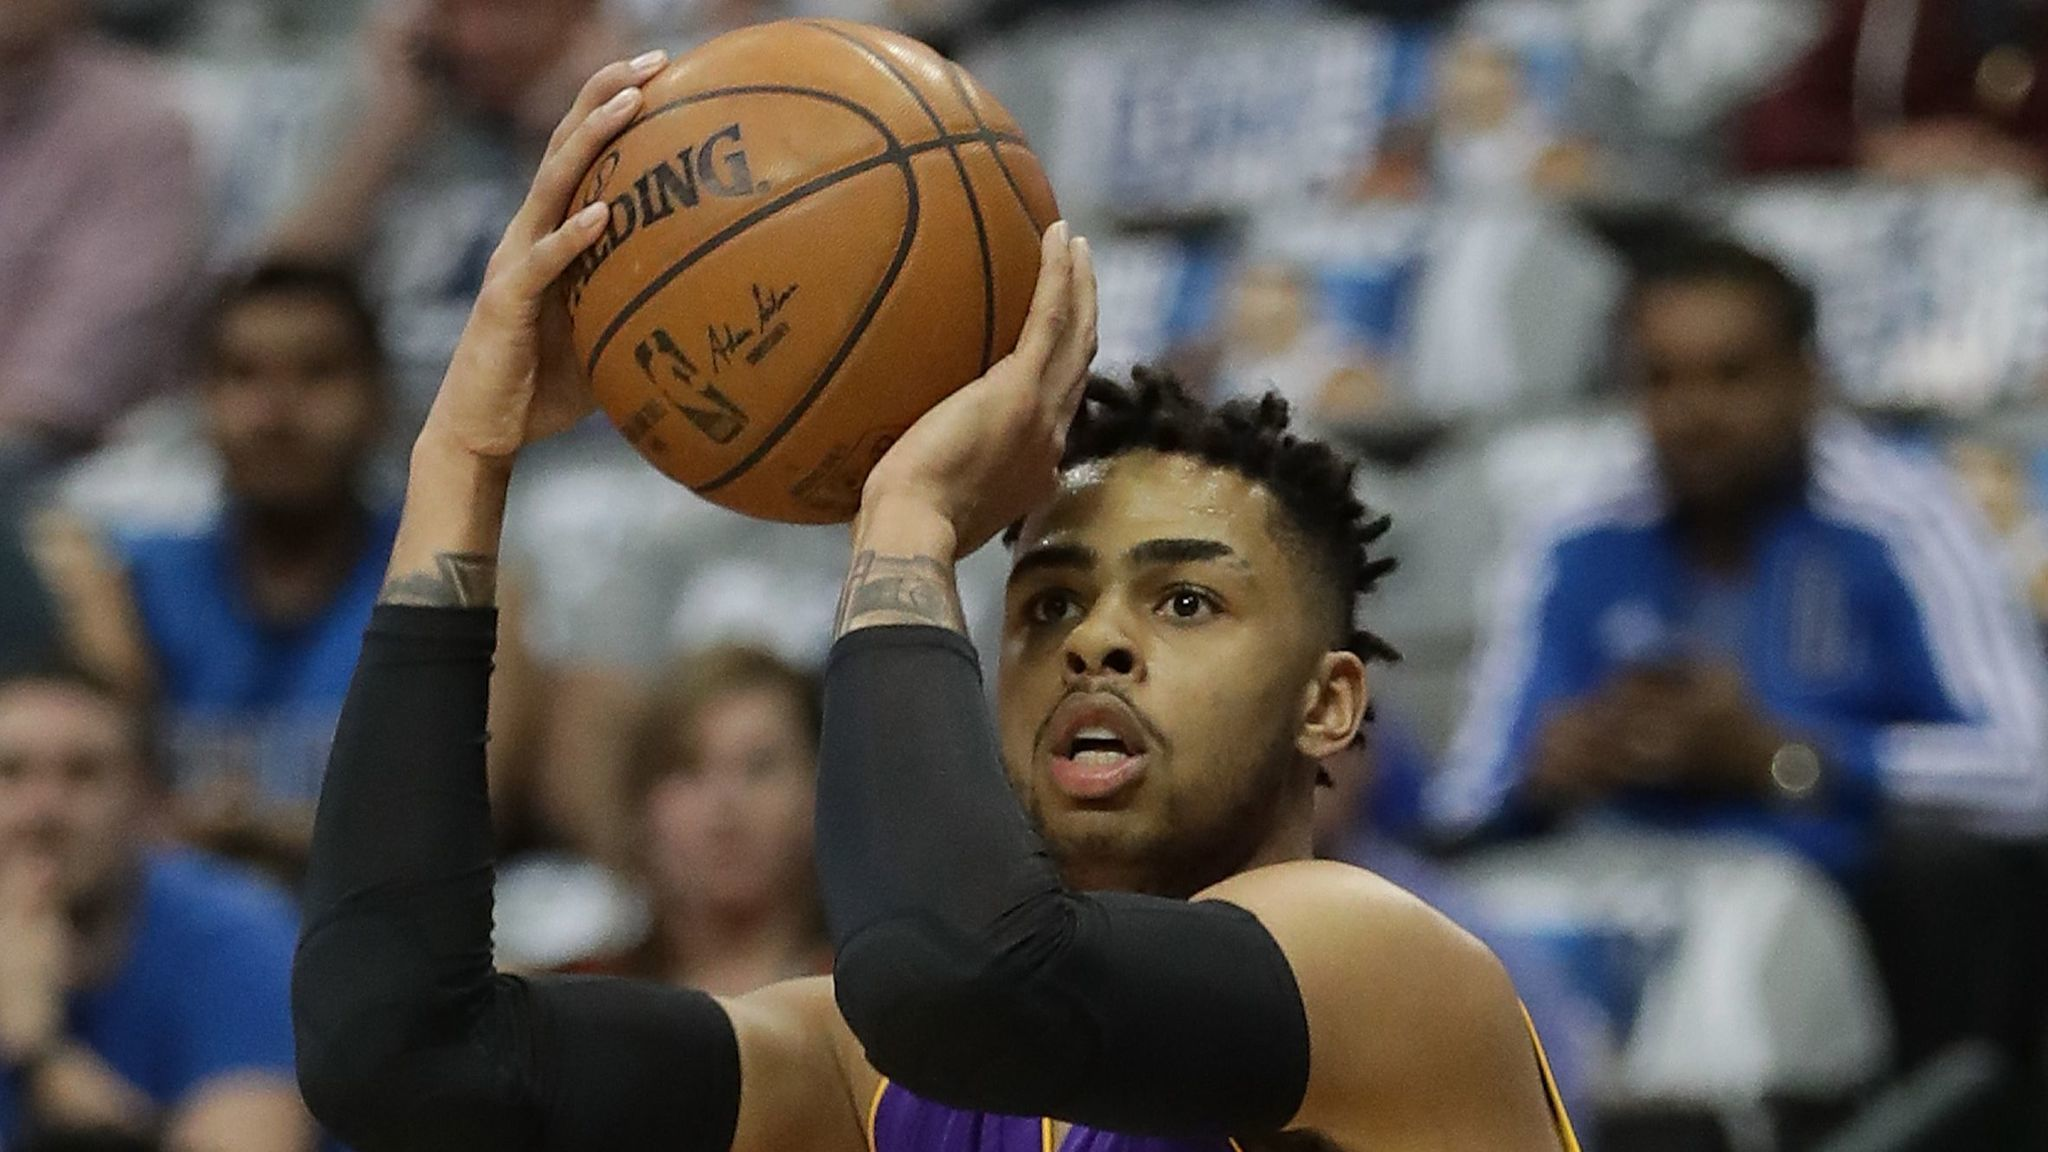 La-sp-lakers-russell-shooting-guard-20170315